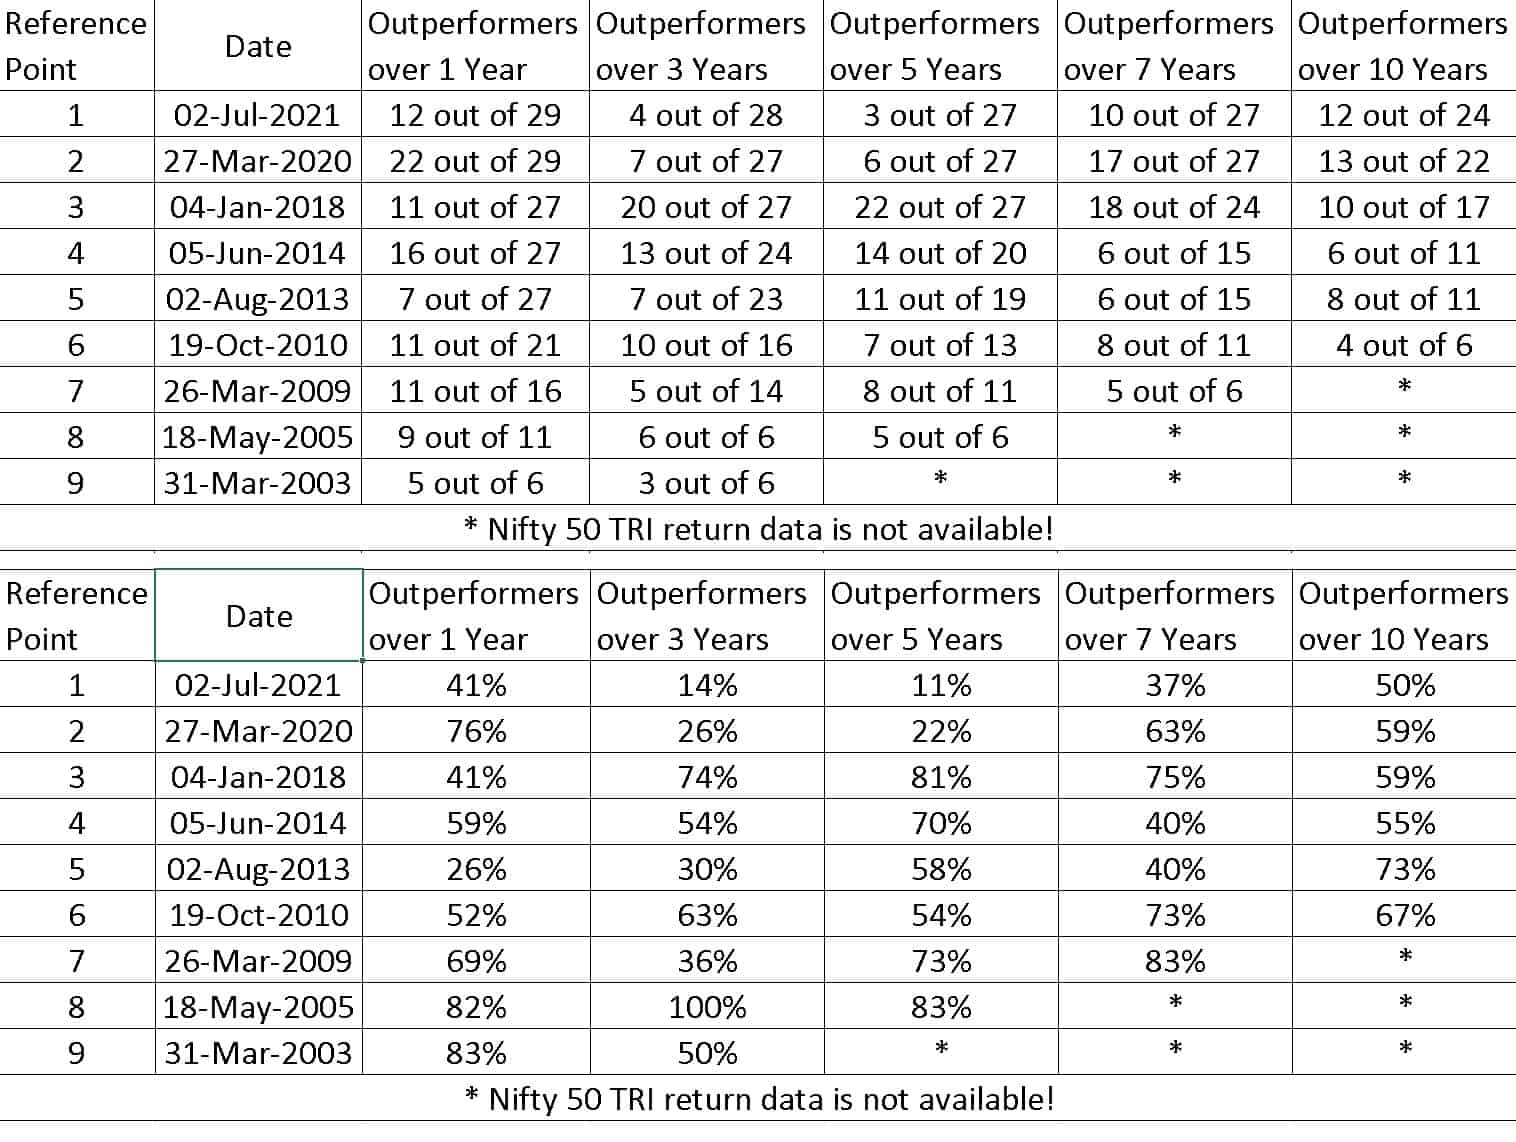 Performance of Active Large Cap Mutual Funds vs Nifty 50 TRI on specific dates in the past